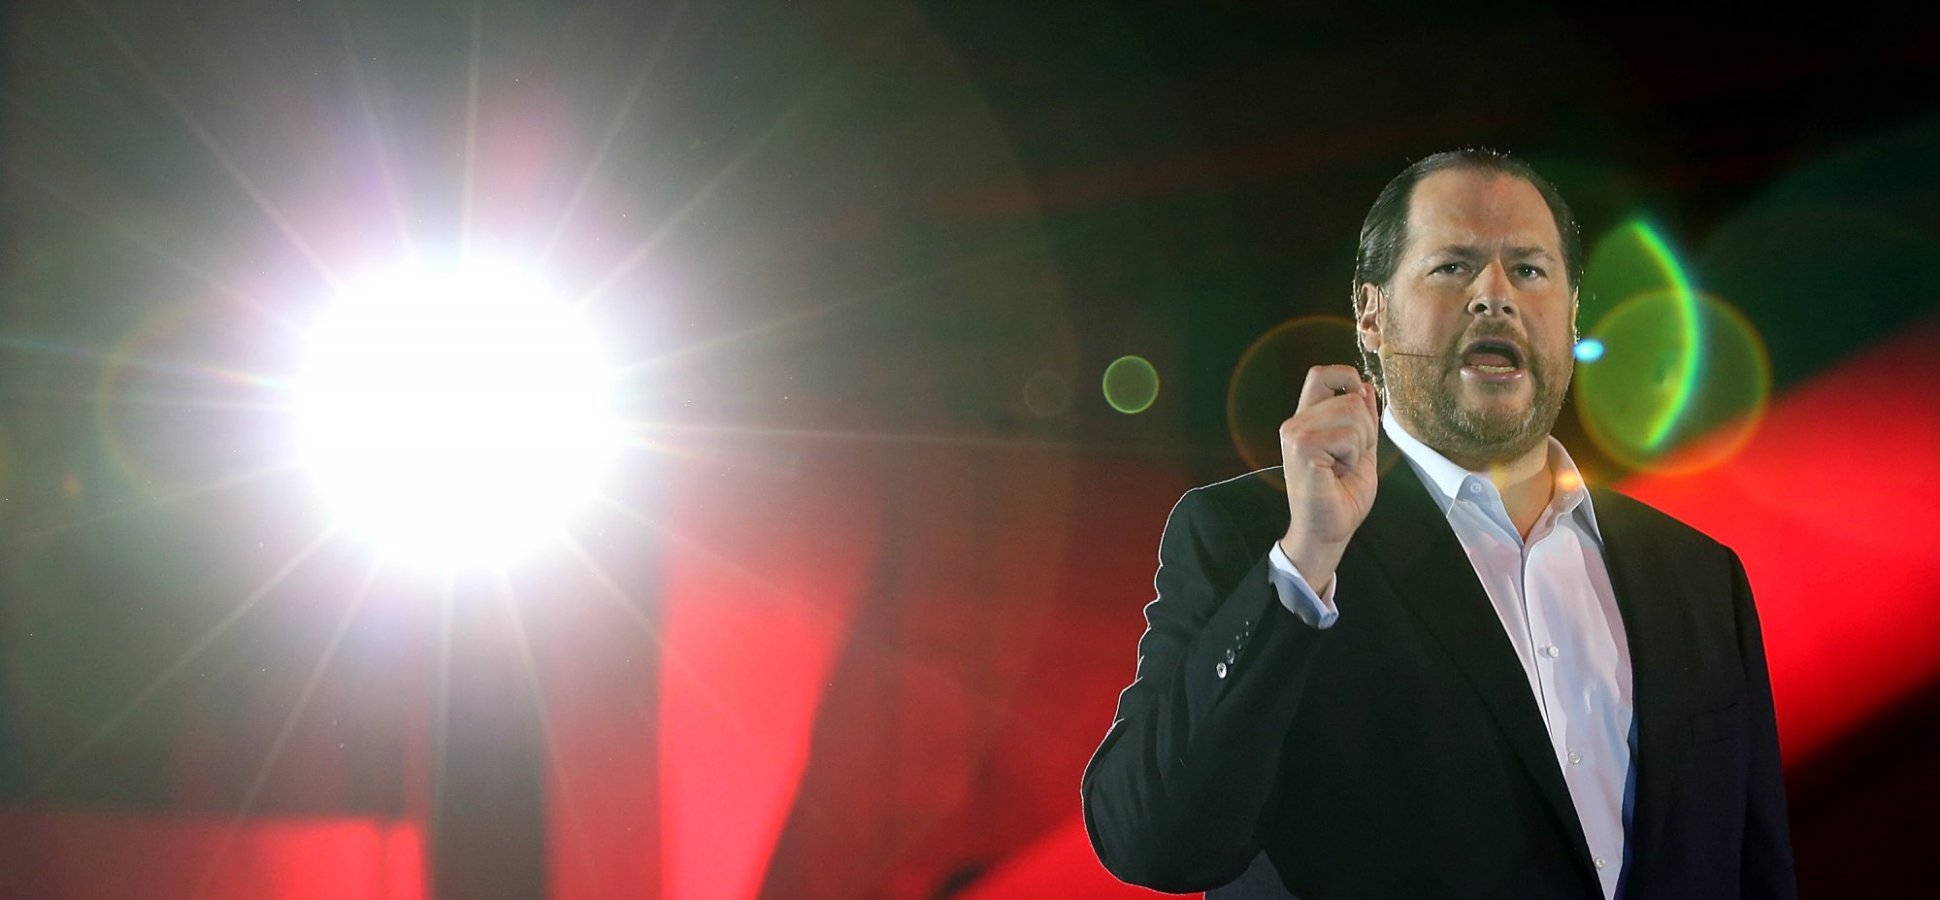 Marc Benioff Says Capitalism Is Dead. Here's What He Thinks Needs to Replace It